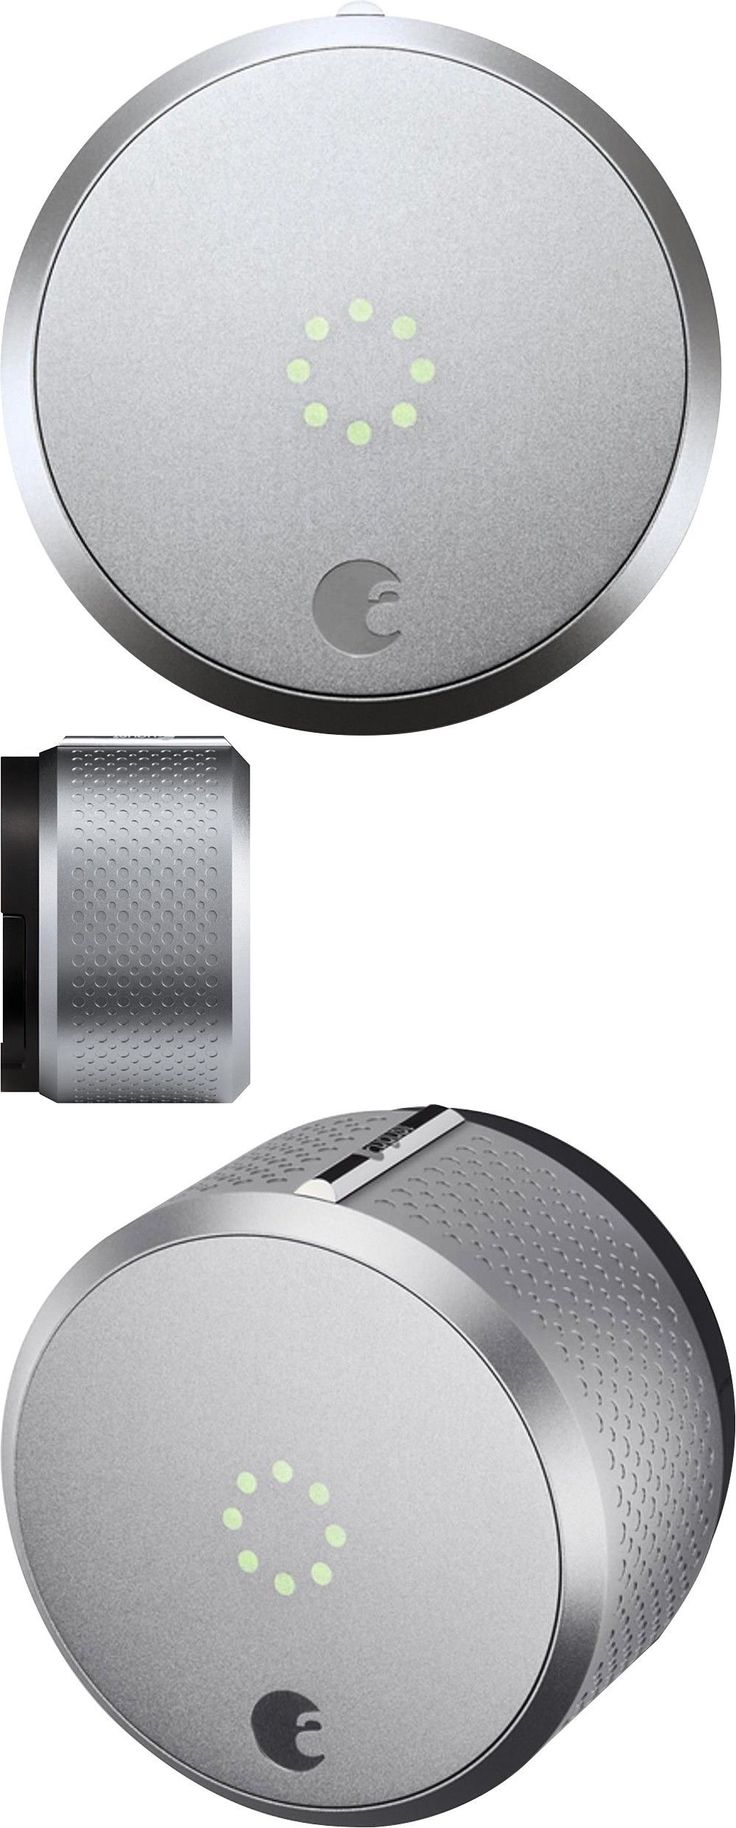 Other Home Security 20589: August - Homekit Bluetooth Deadbolt Retrofit Smart Lock - Silver-New -> BUY IT NOW ONLY: $160 on eBay!